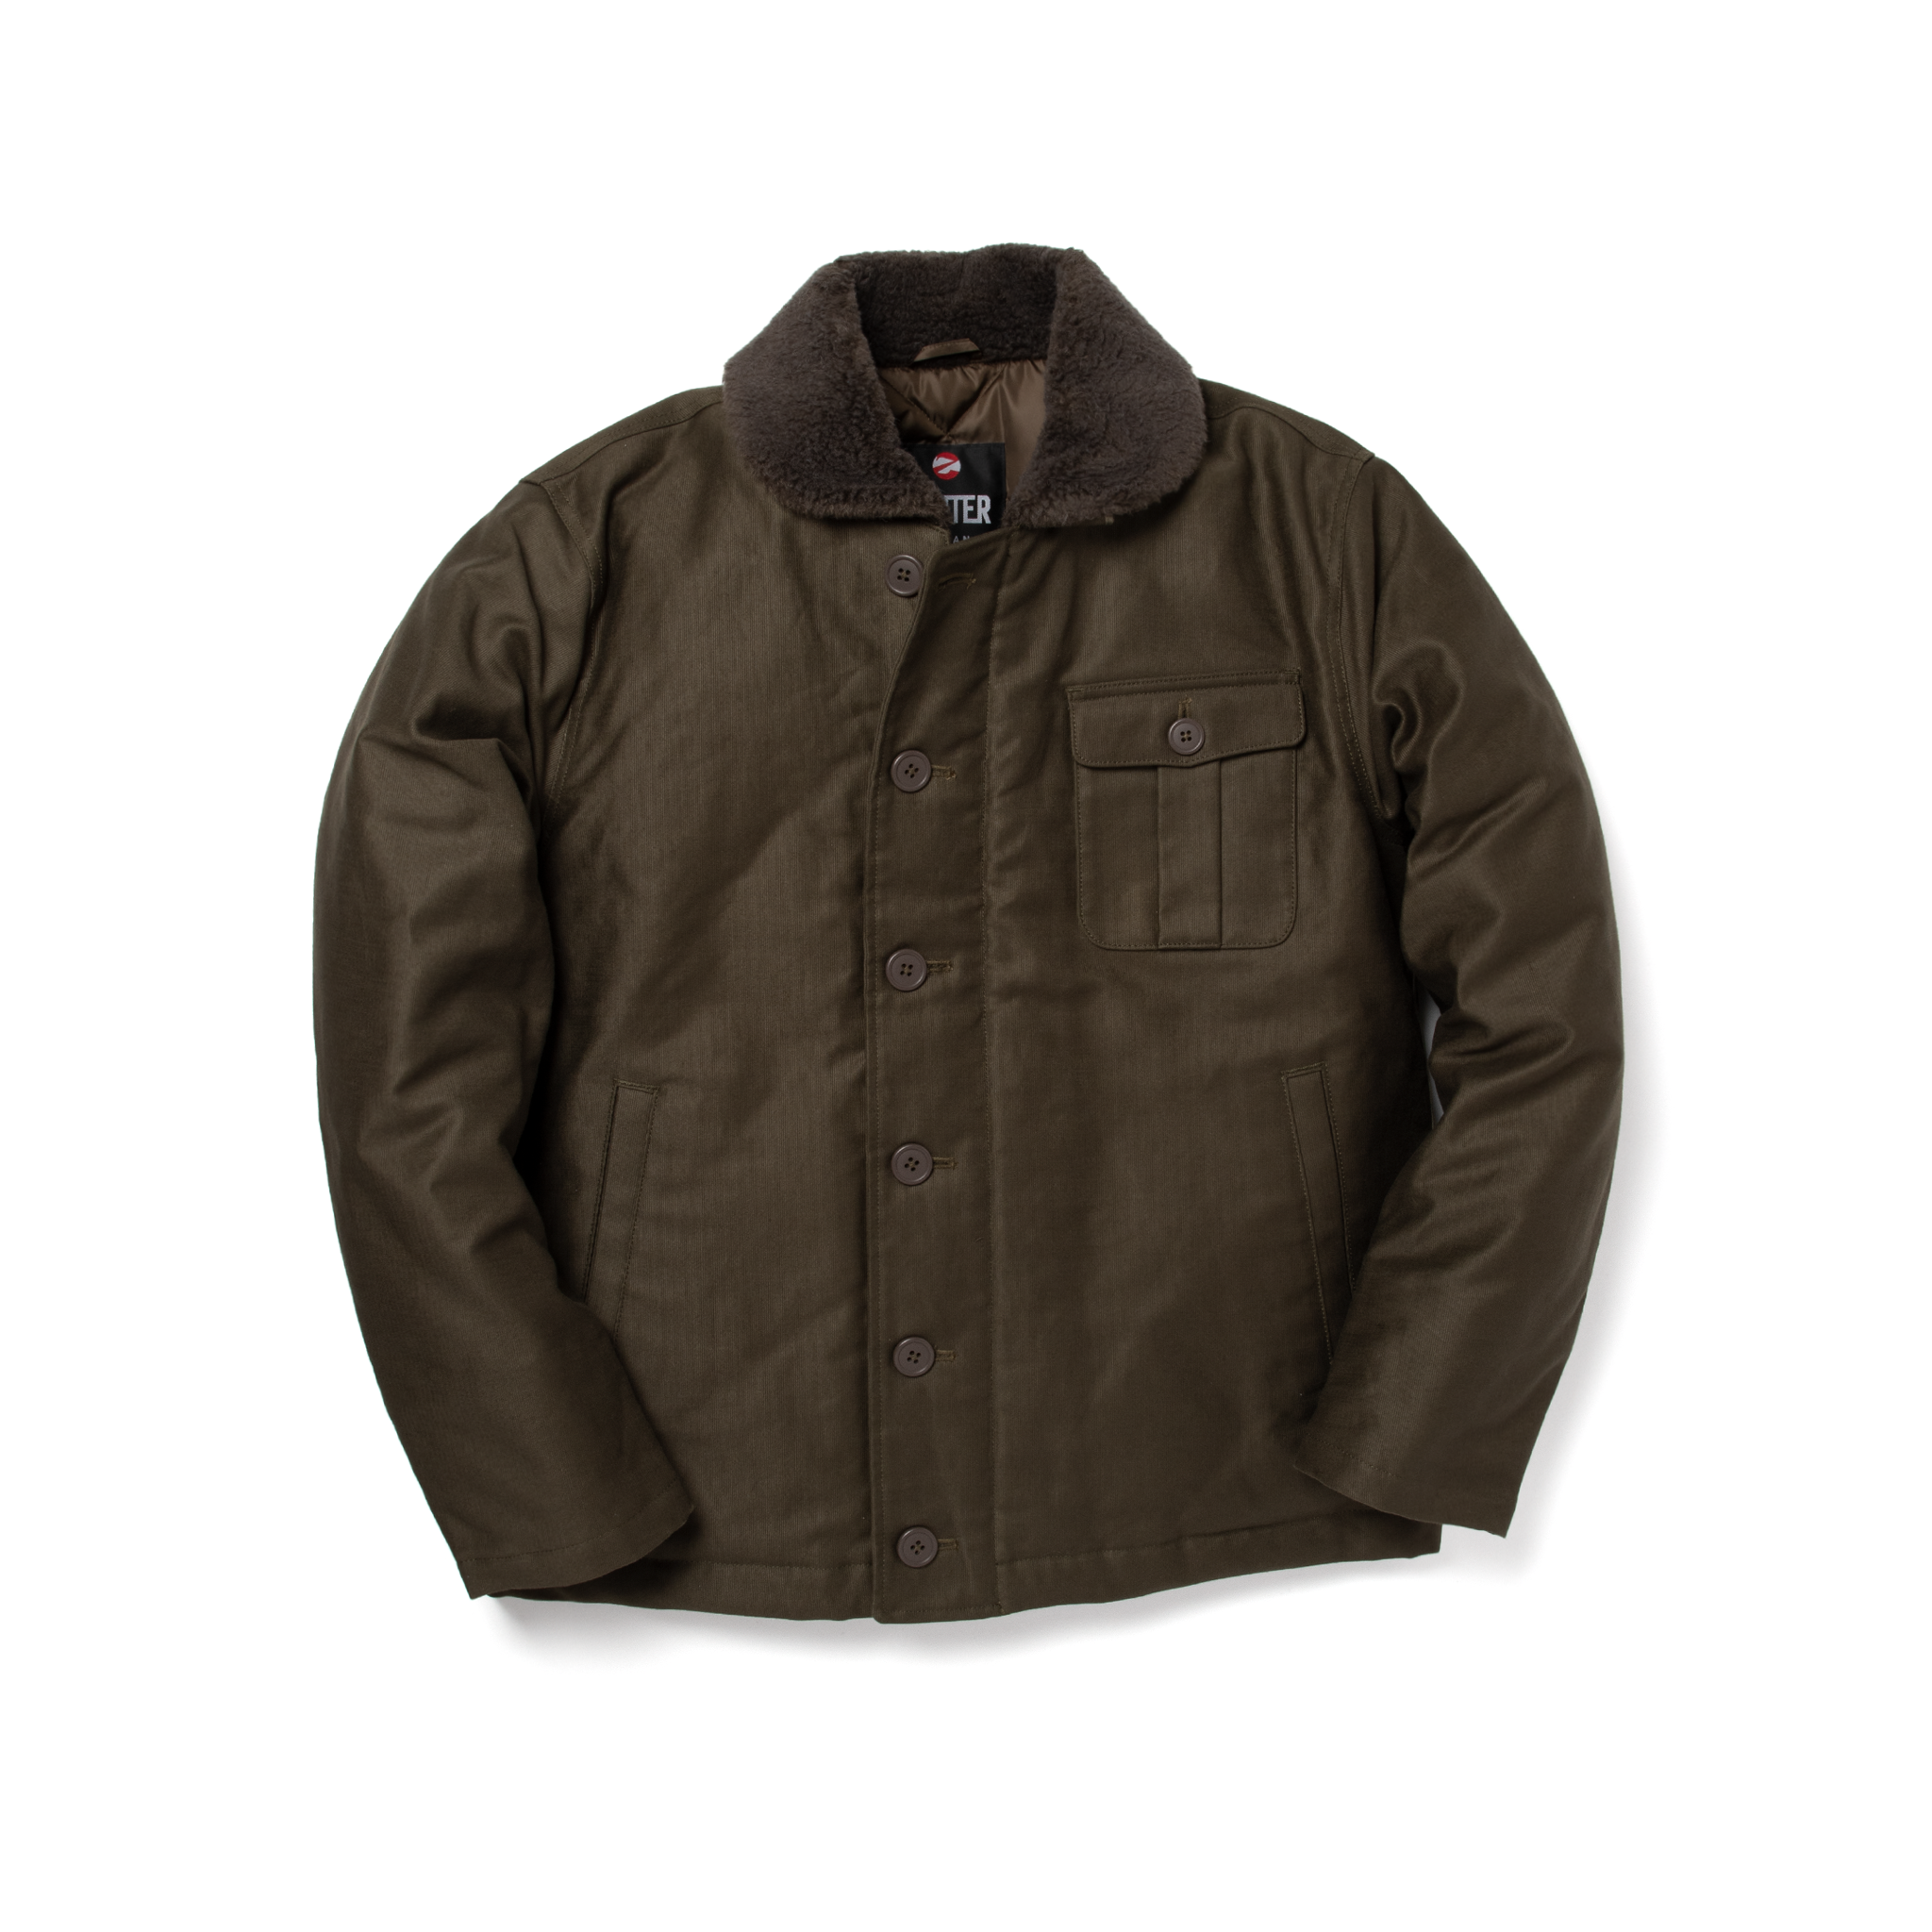 N1 DOWN JACKET - KHAKI